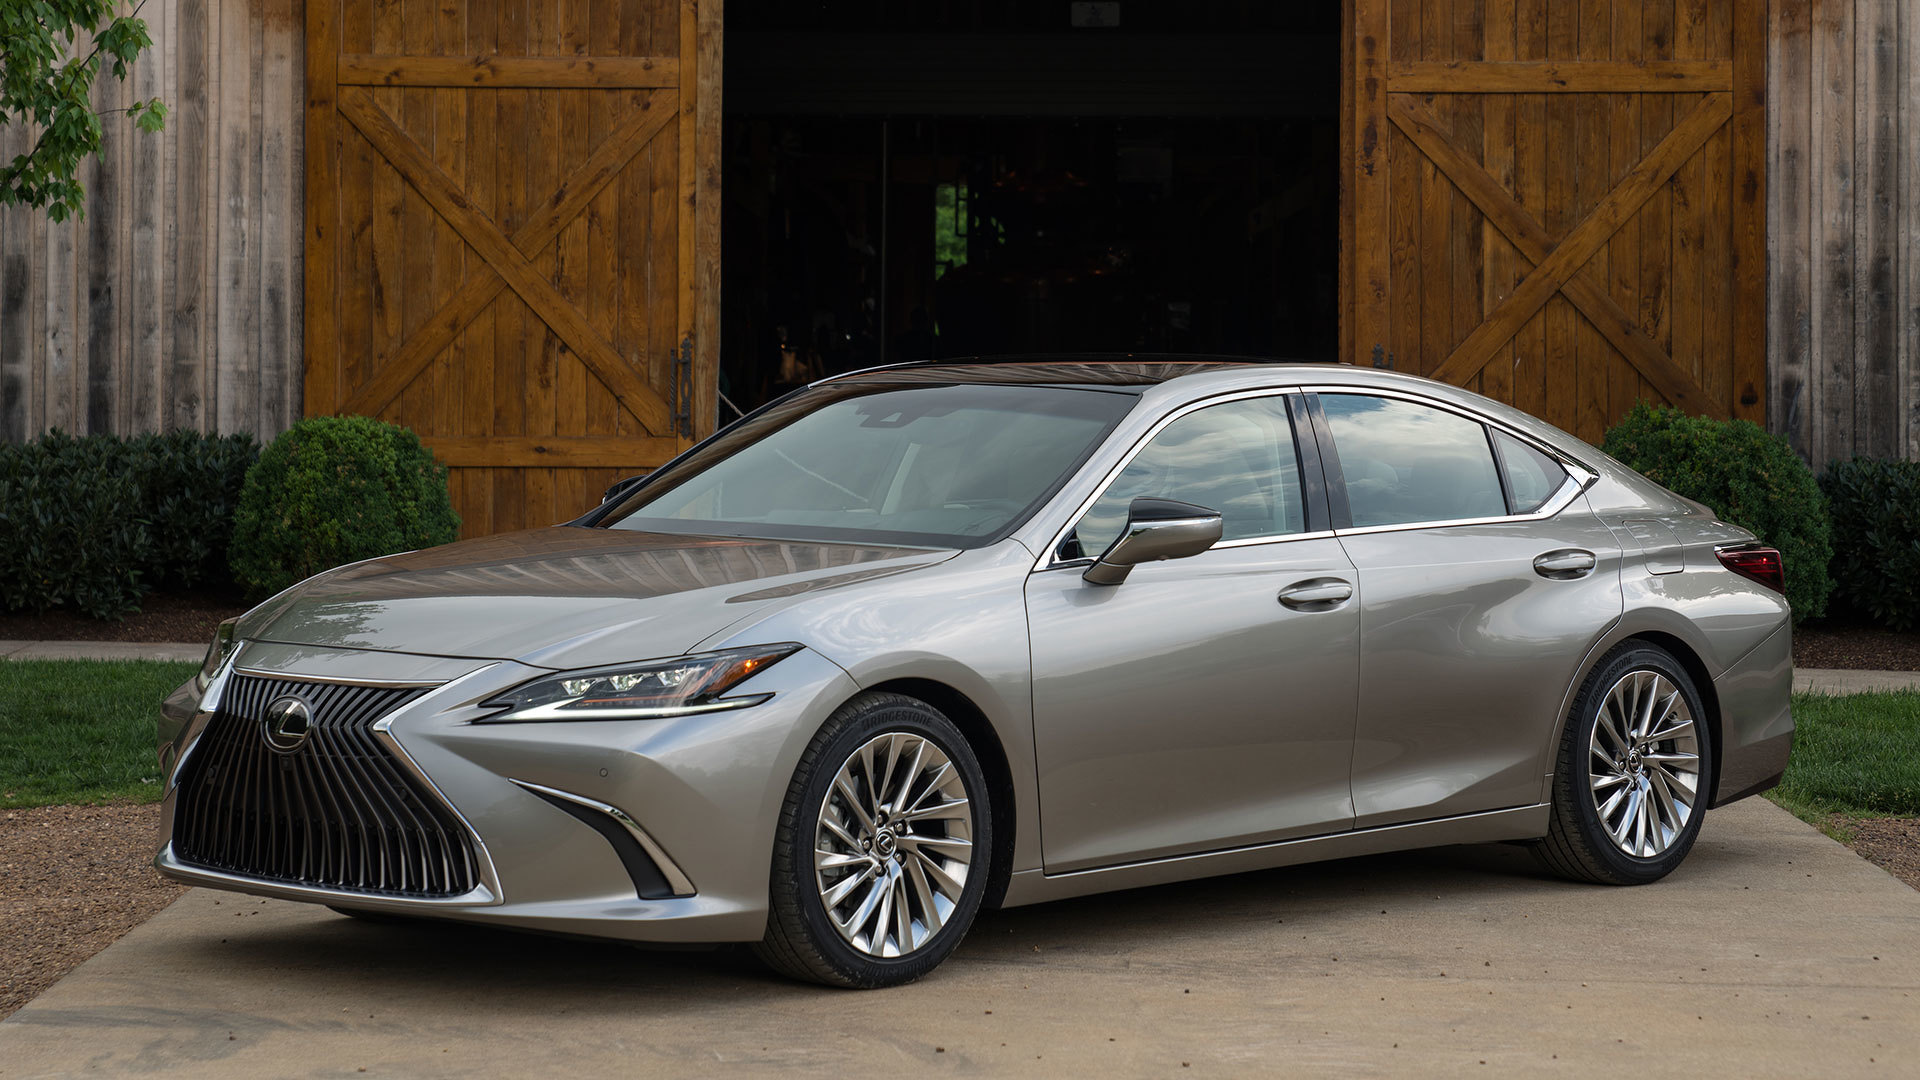 2019 lexus es350 2019 Lexus ES 350 First Drive: Not Everyone's An Athlete 2019 lexus es350